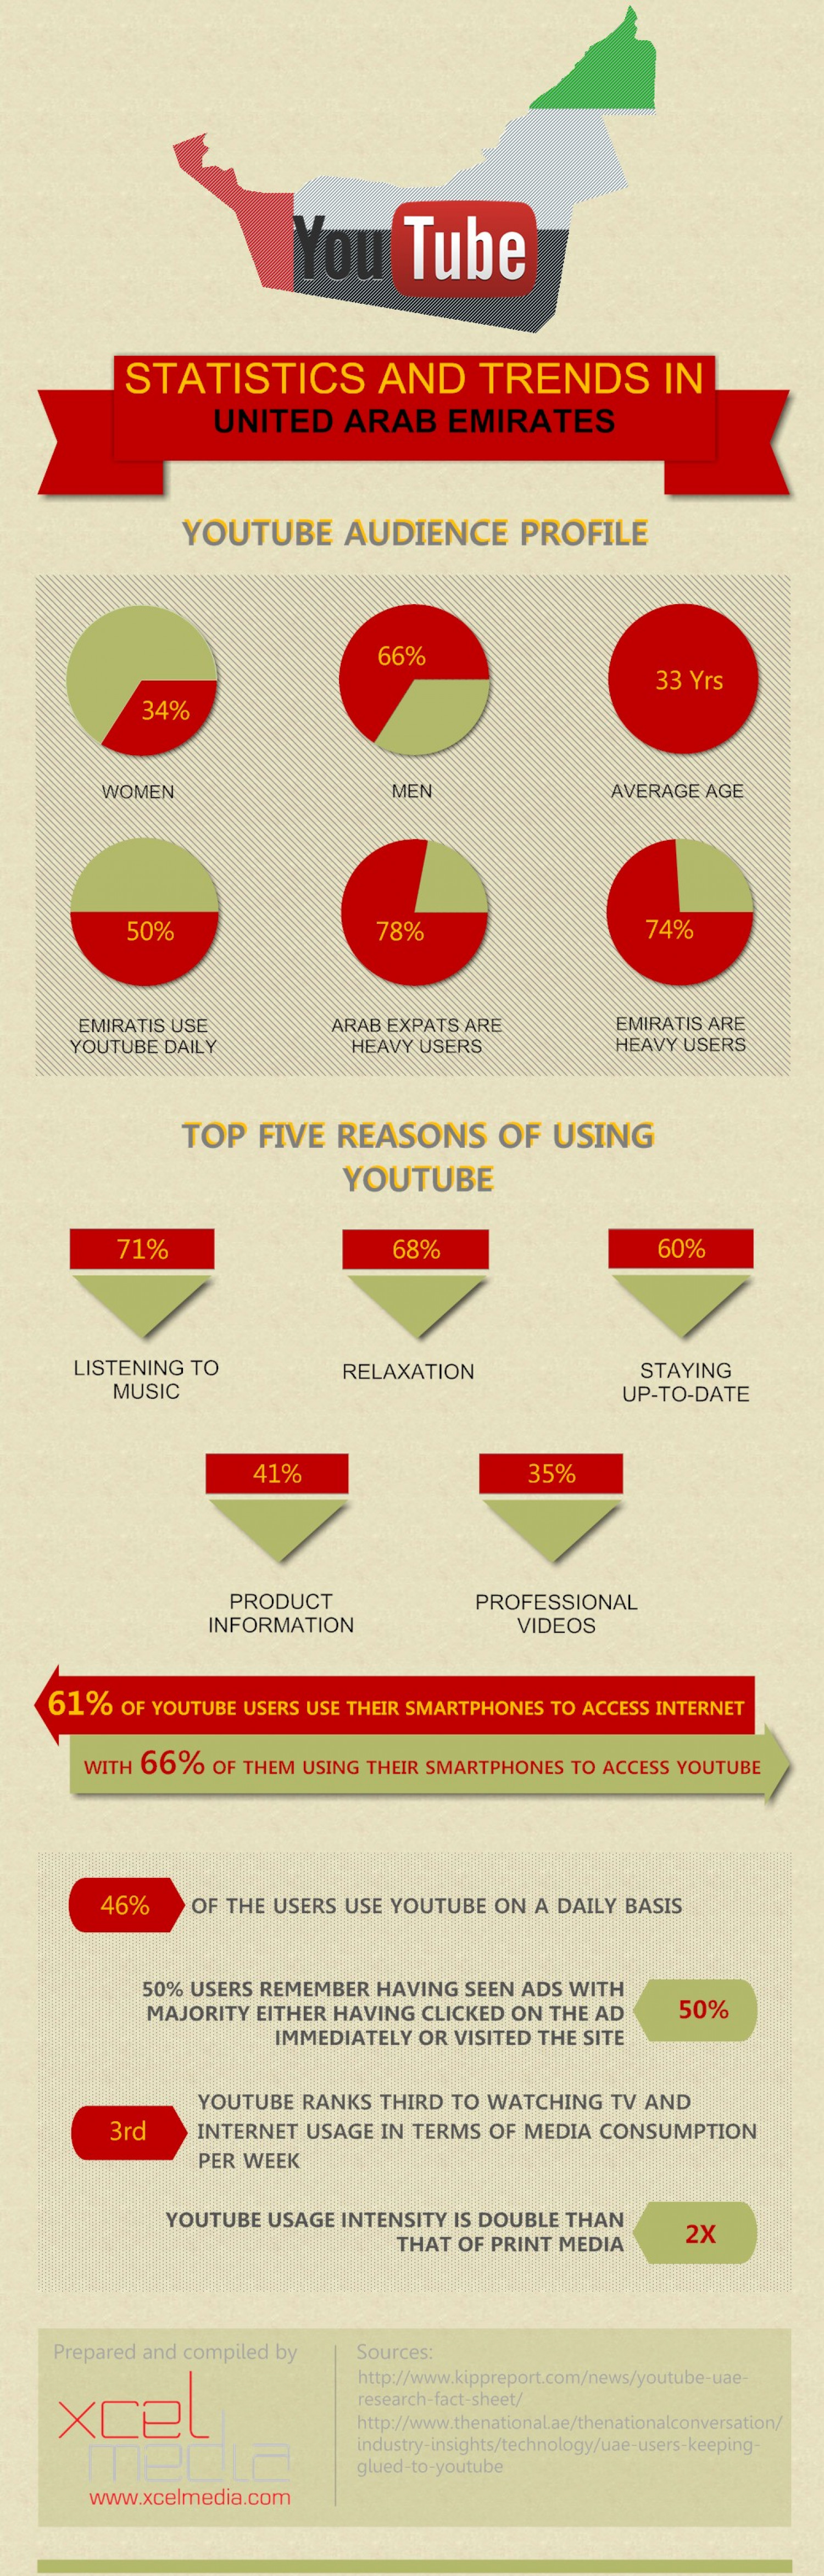 YouTube Consumption in UAE Infographic